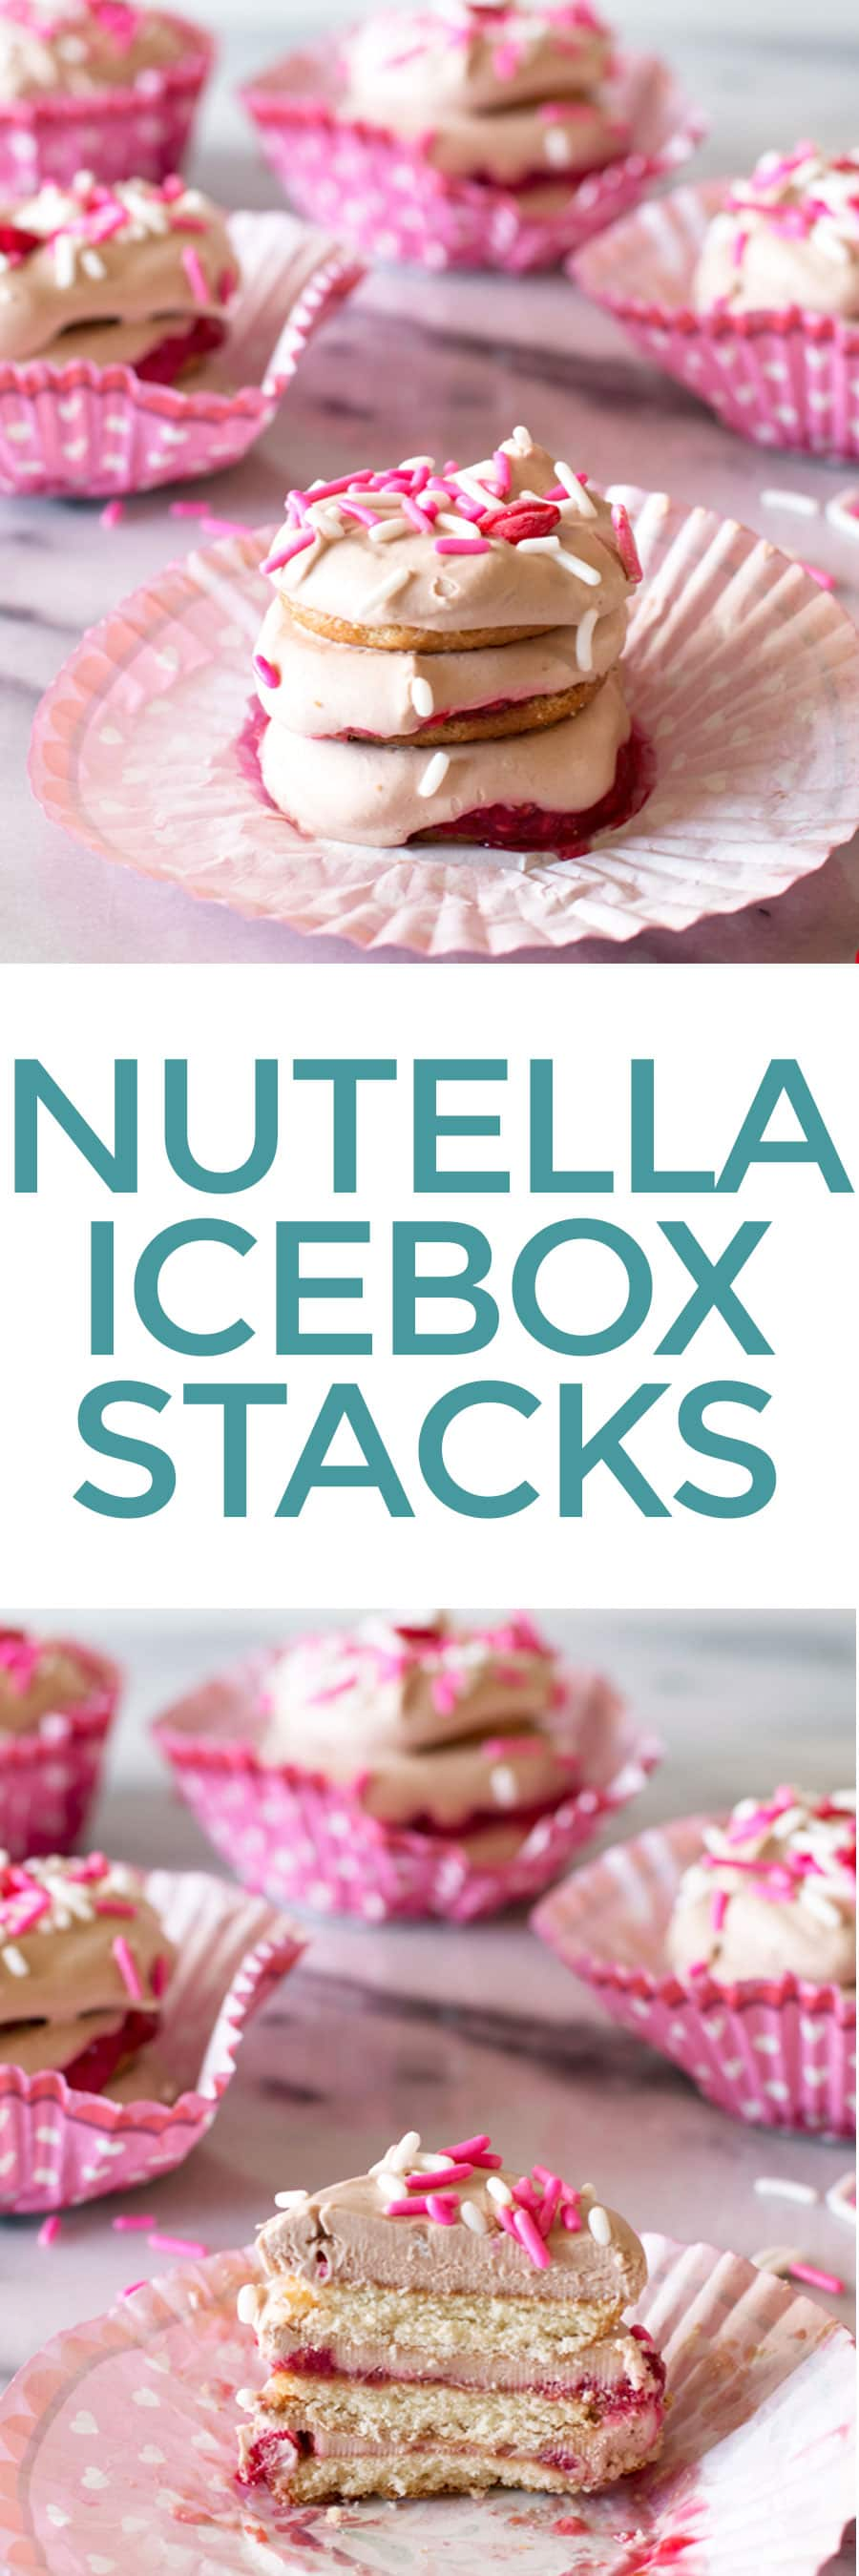 Nutella Icebox Stacks | cakenknife.com